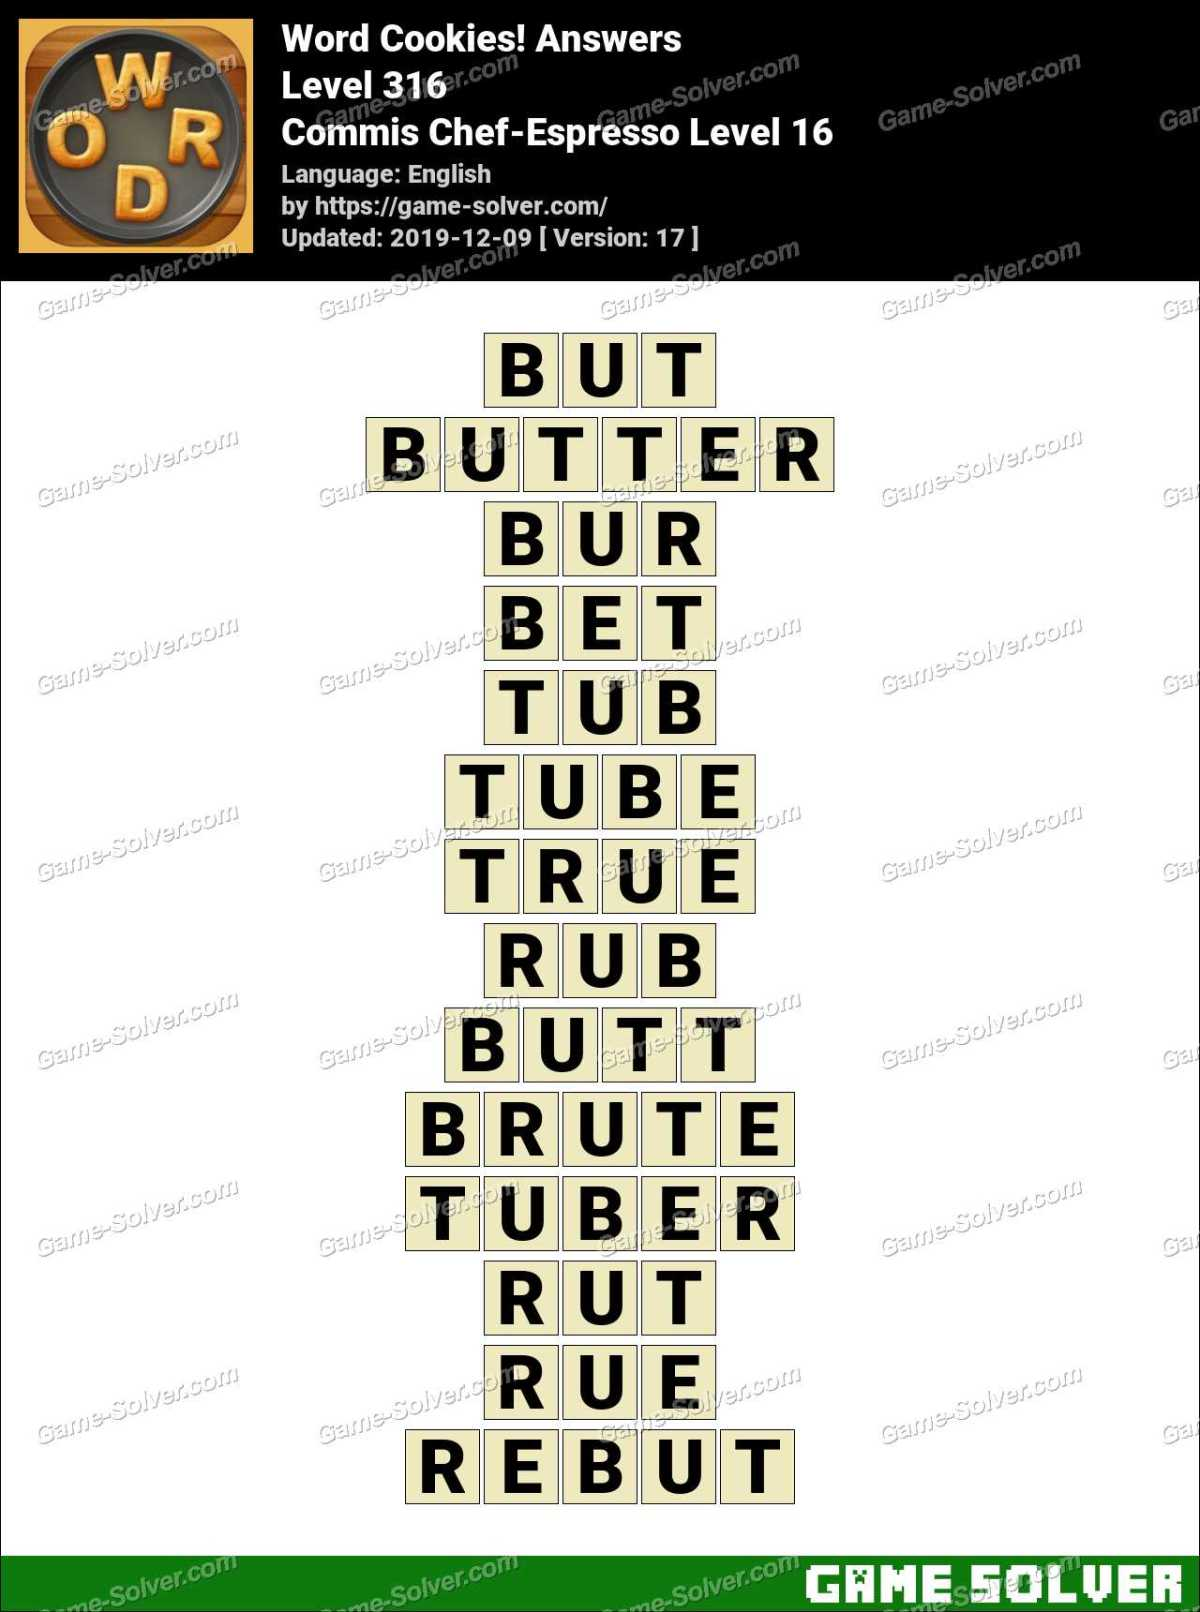 Word Cookies Commis Chef-Espresso Level 16 Answers